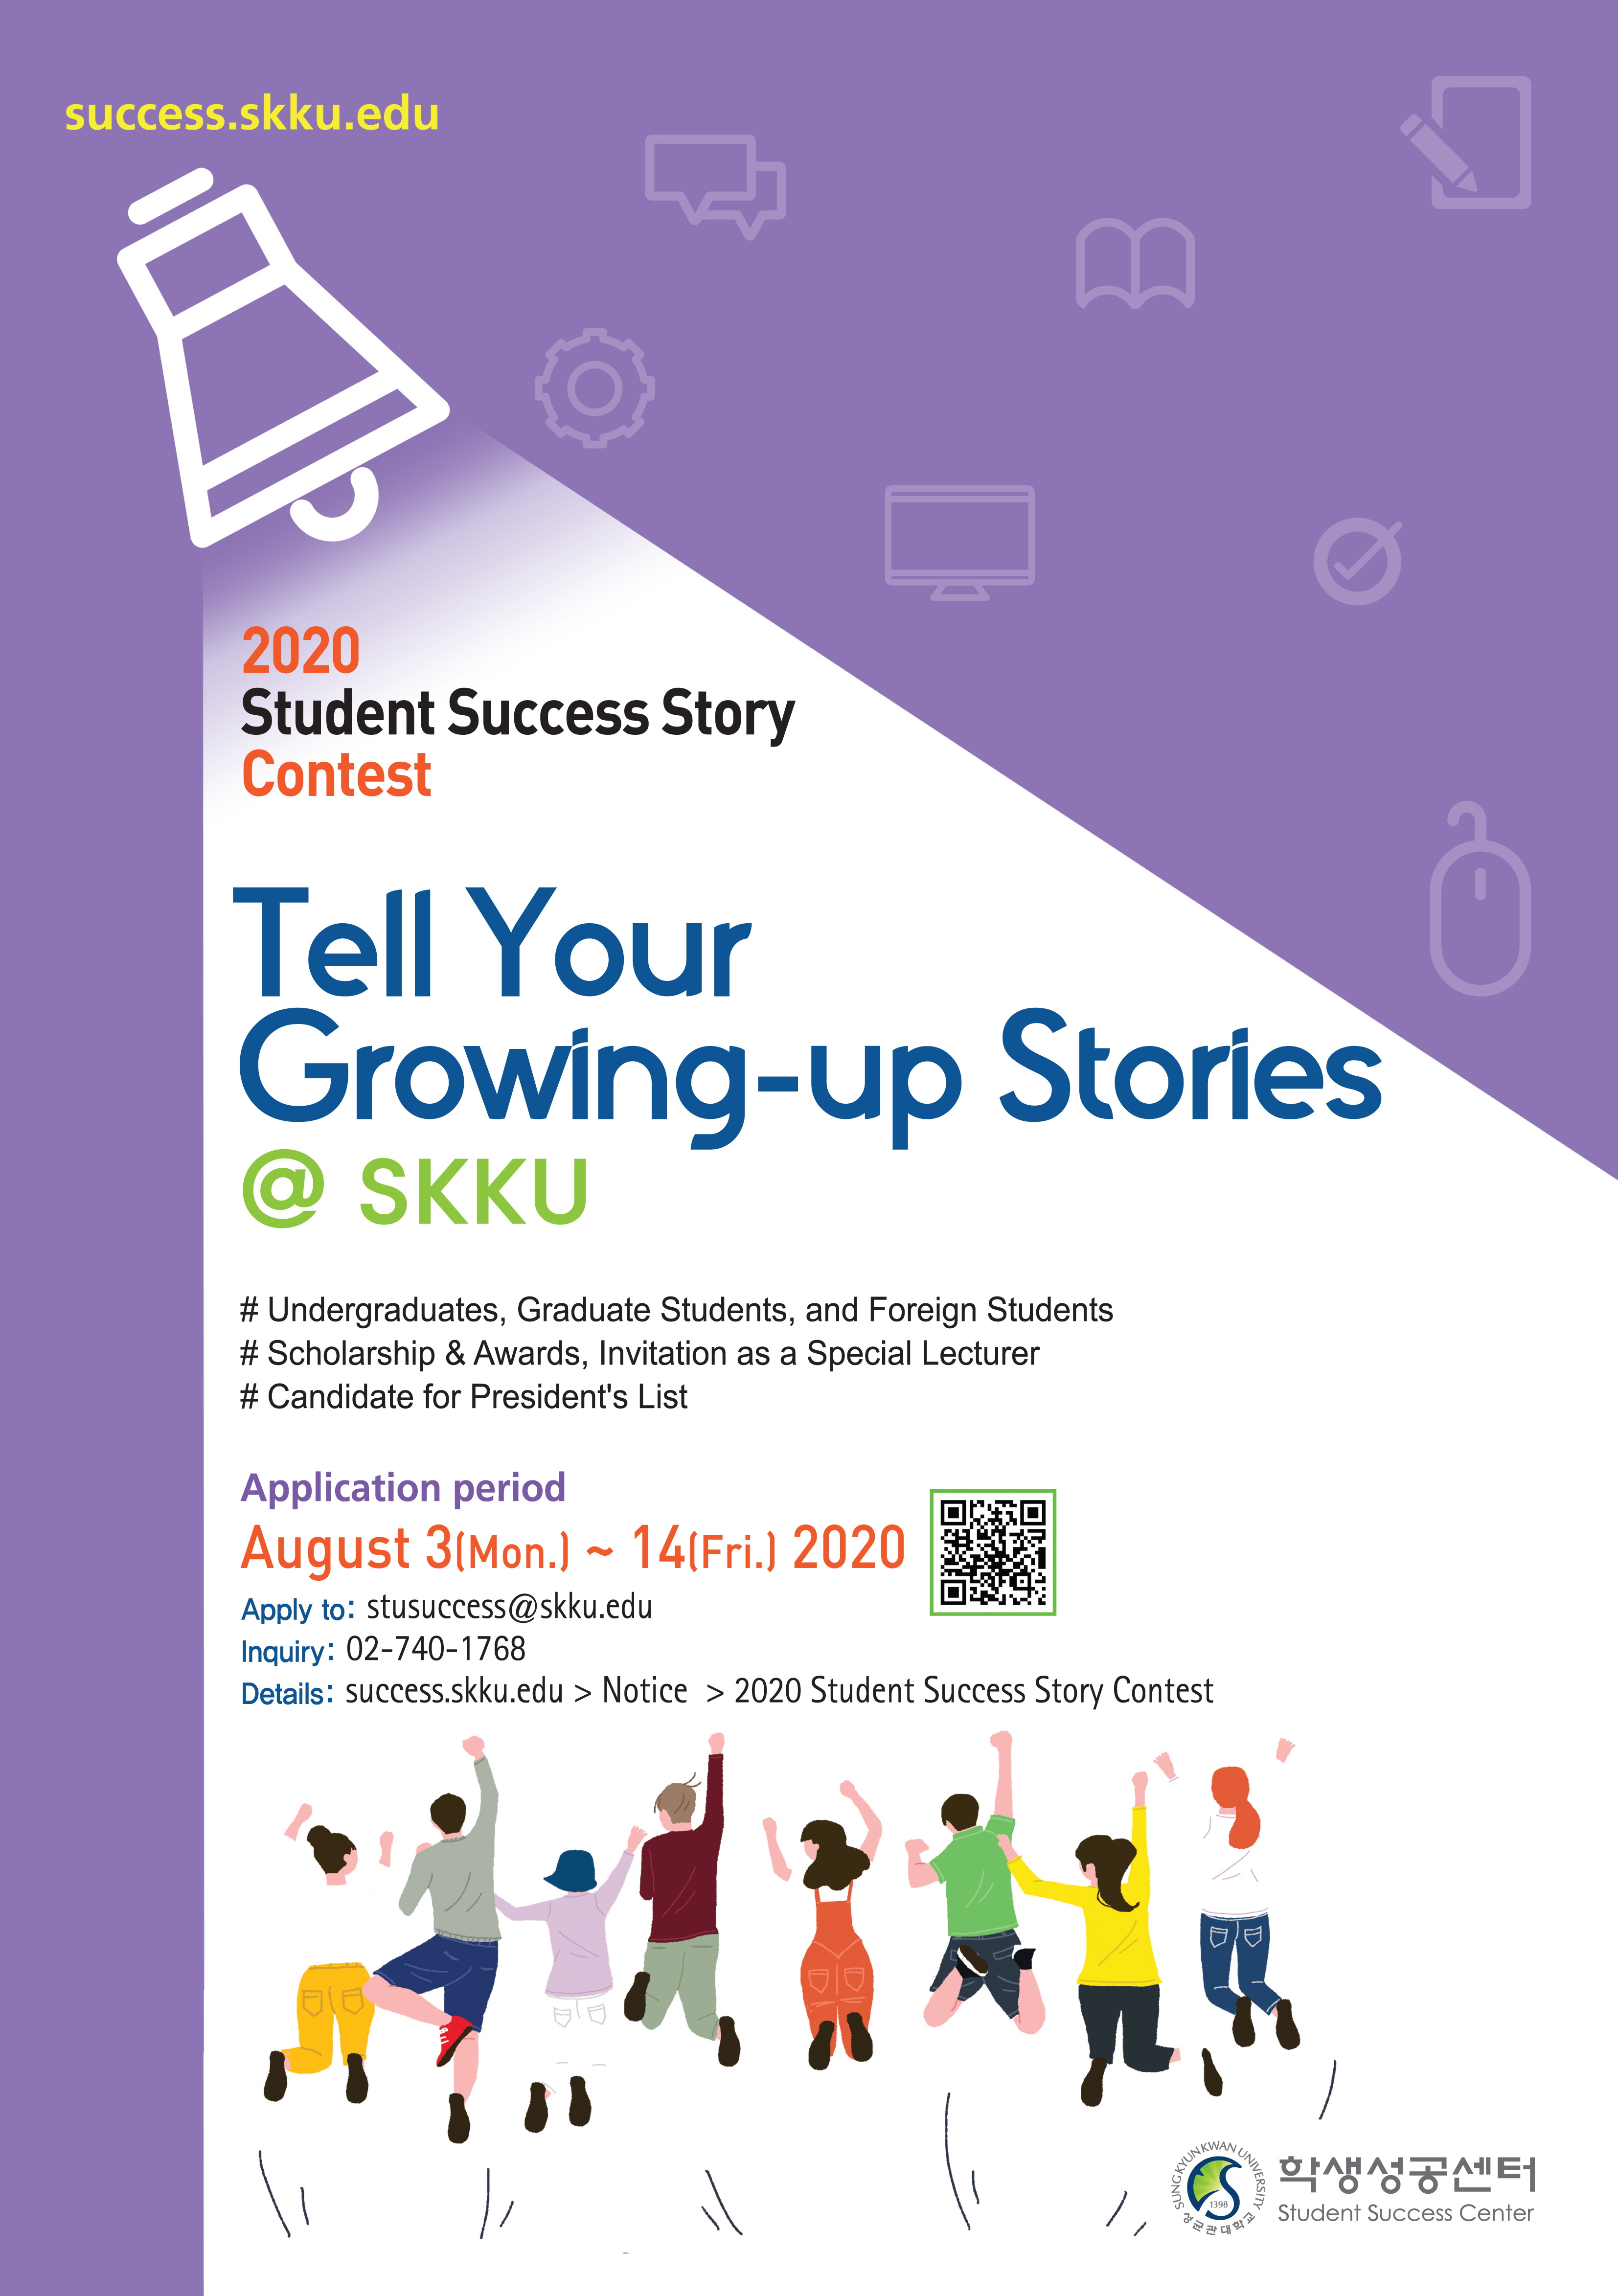 2020 Student Success Story Contest poster